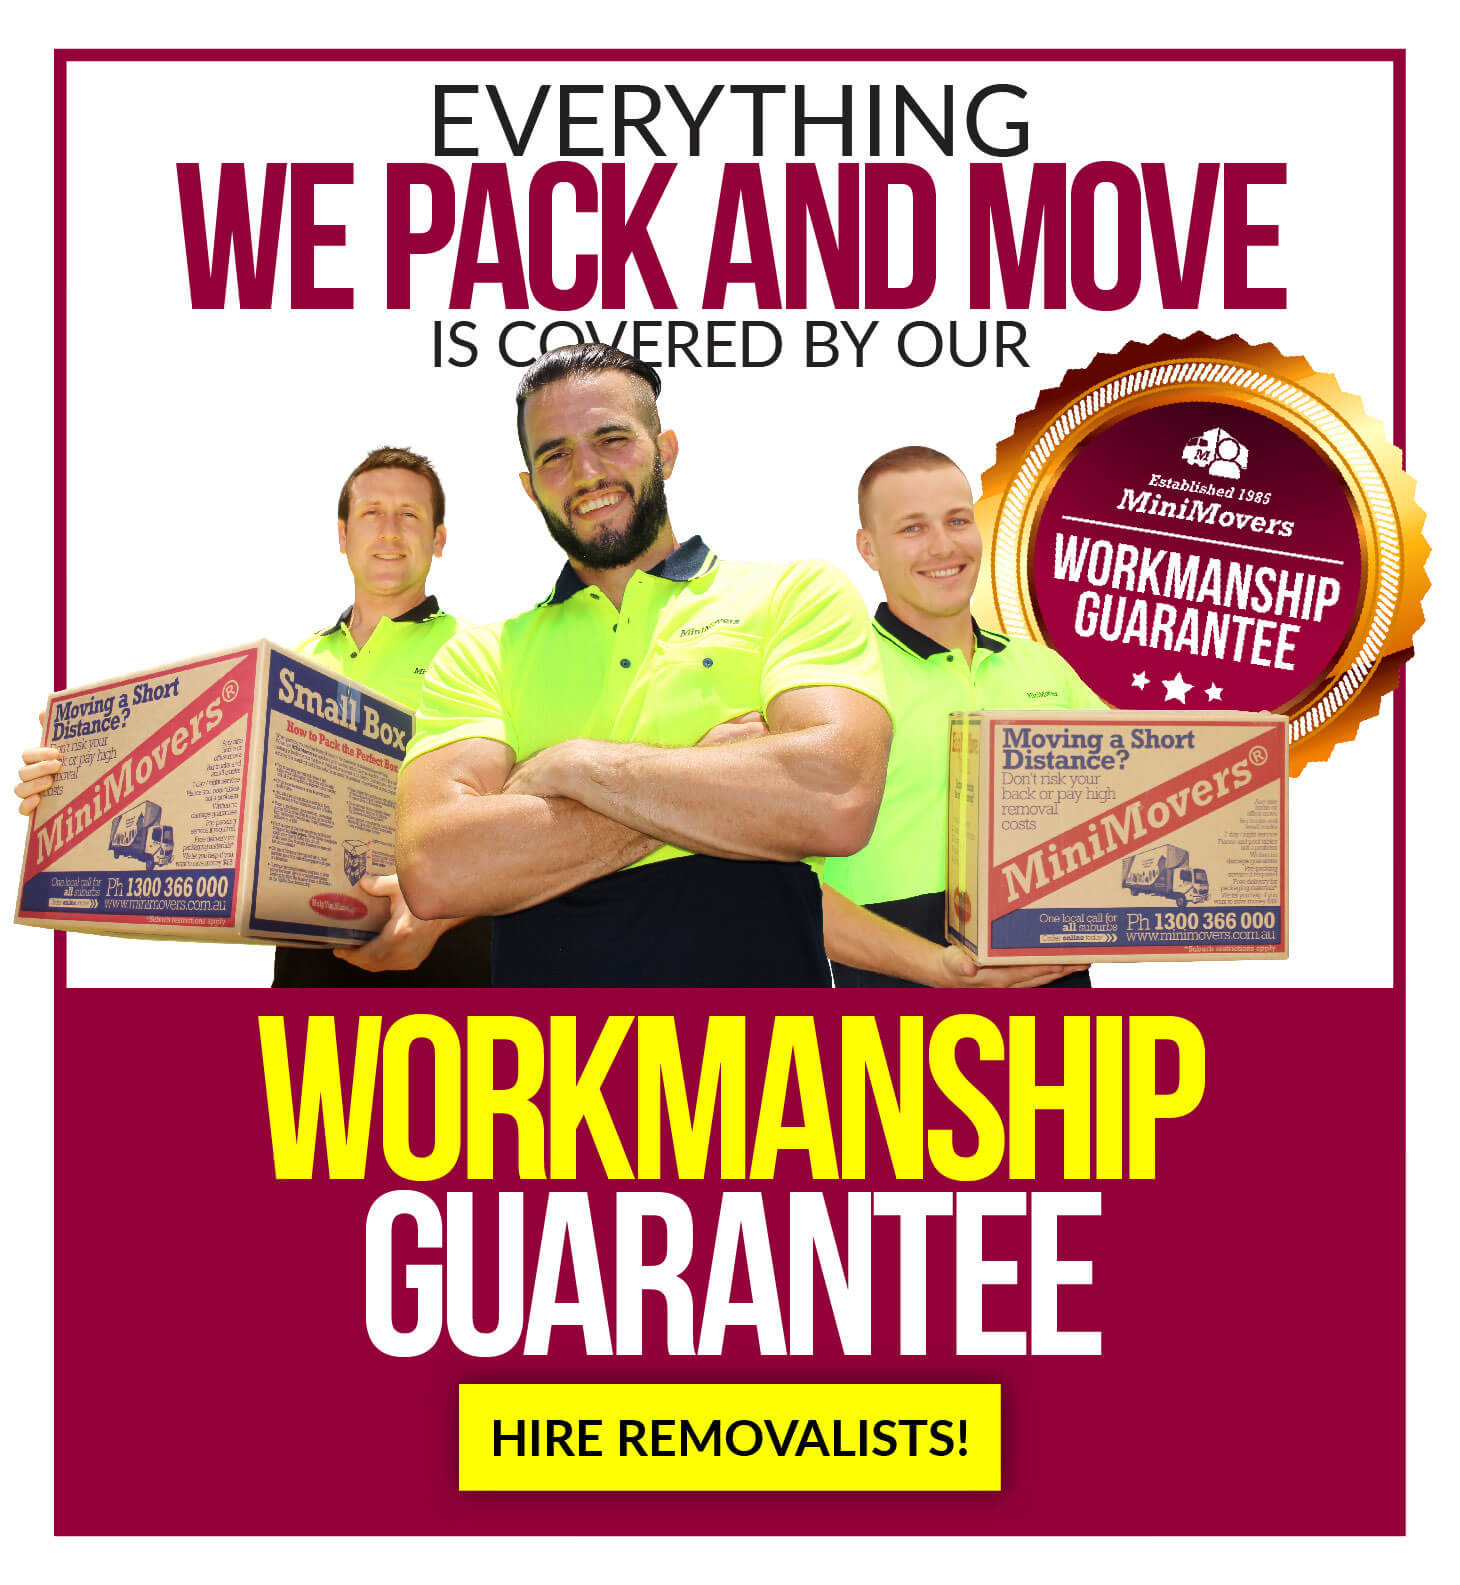 Hire removalists